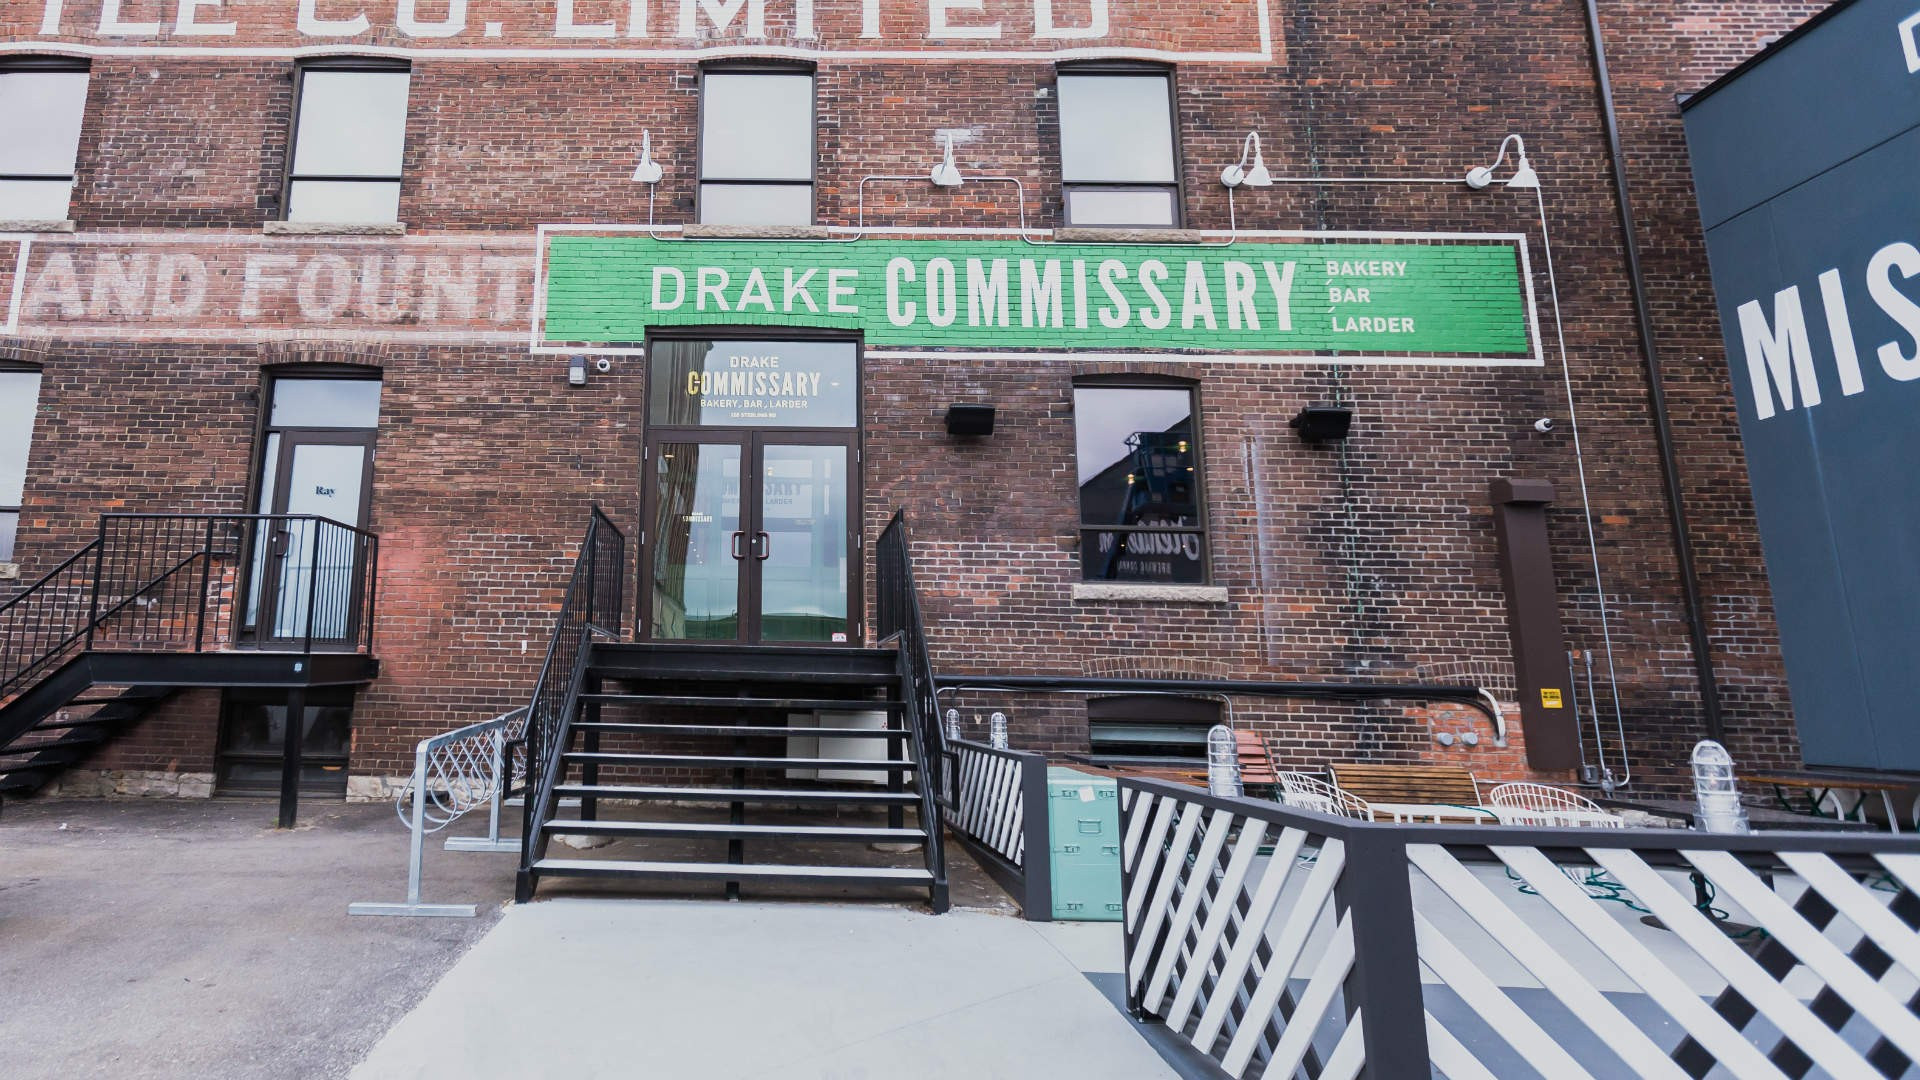 The best restaurants offering delivery and takeout in Toronto: The Drake Commissary exterior